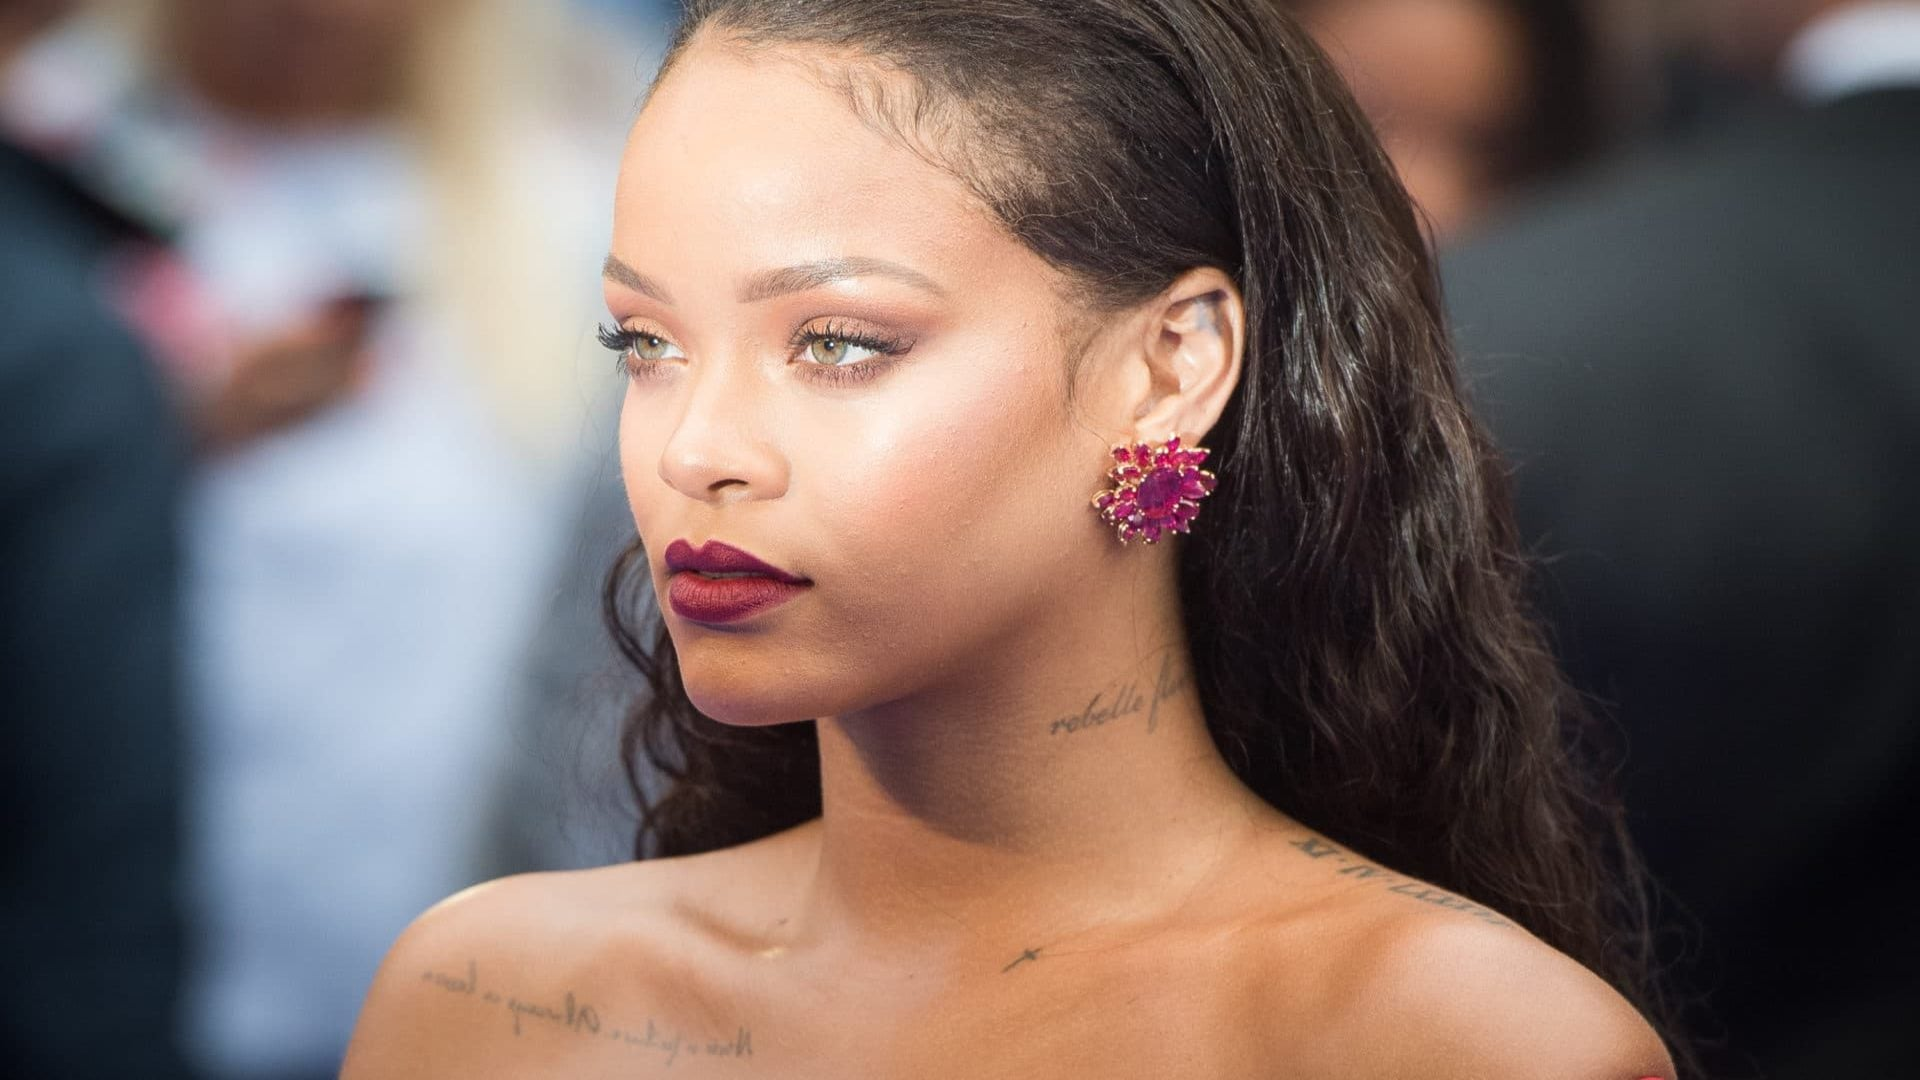 Rihanna Is Suing Her Father For $75 Million Over The Fenty Name